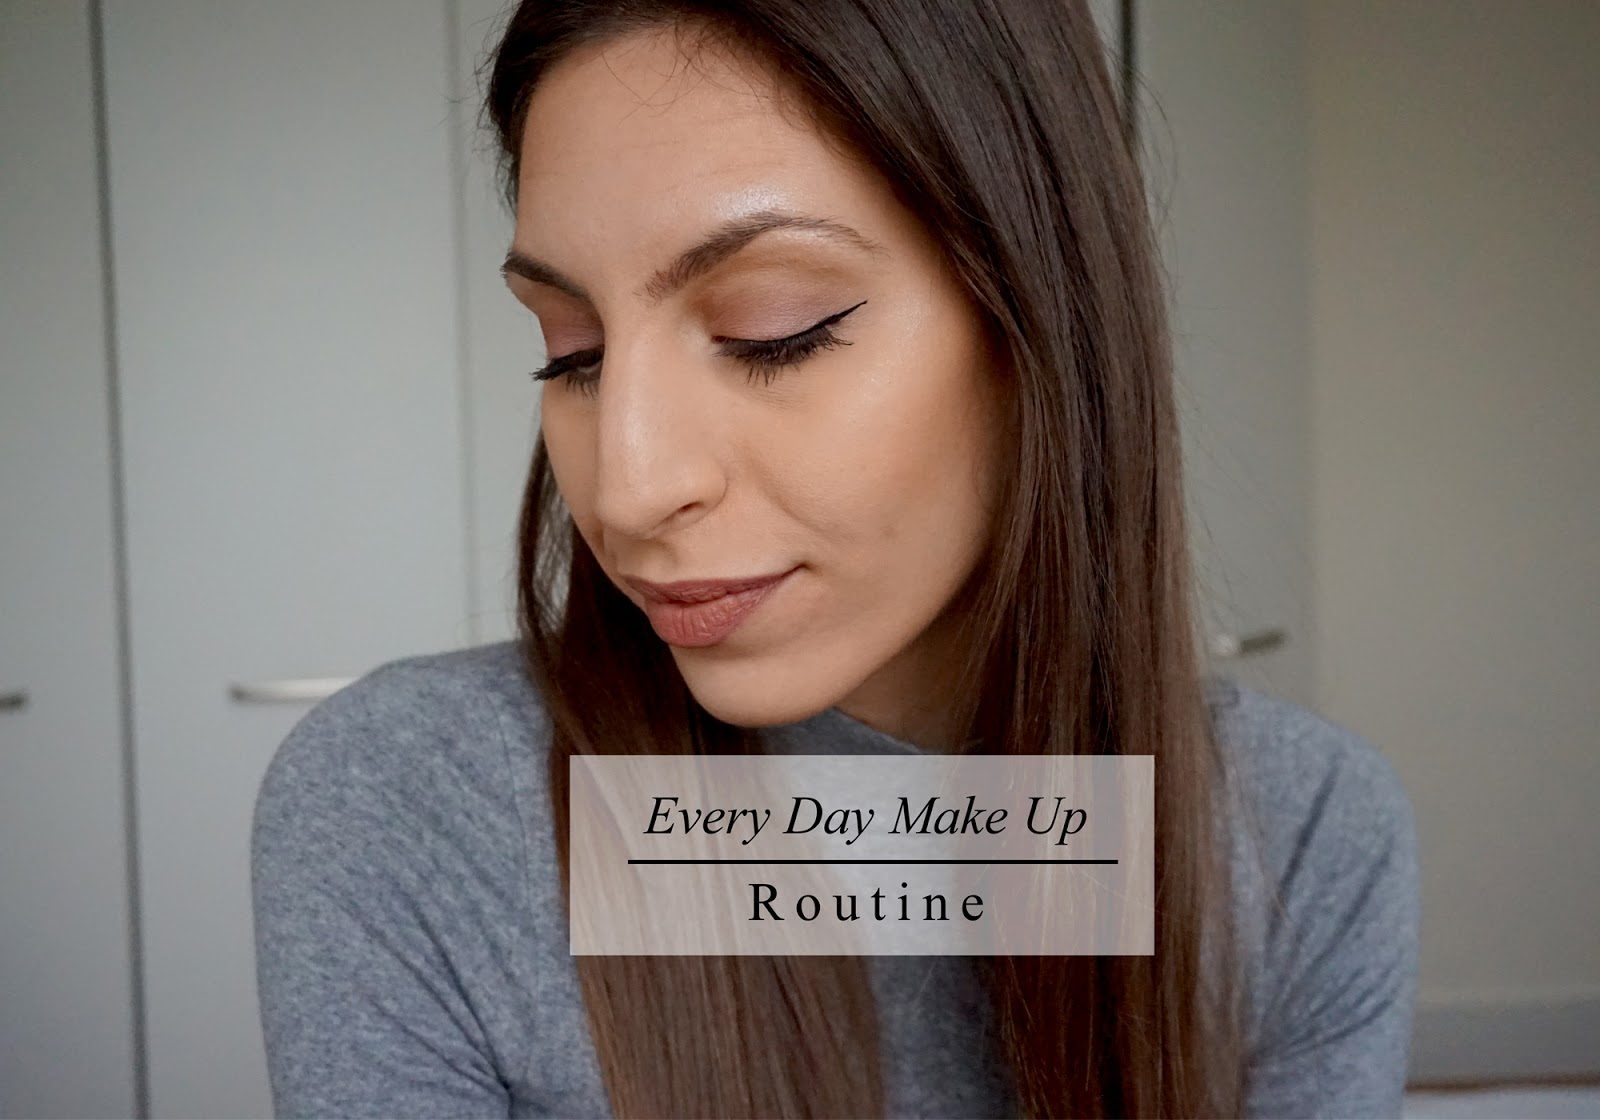 Everyday Make Up Routine